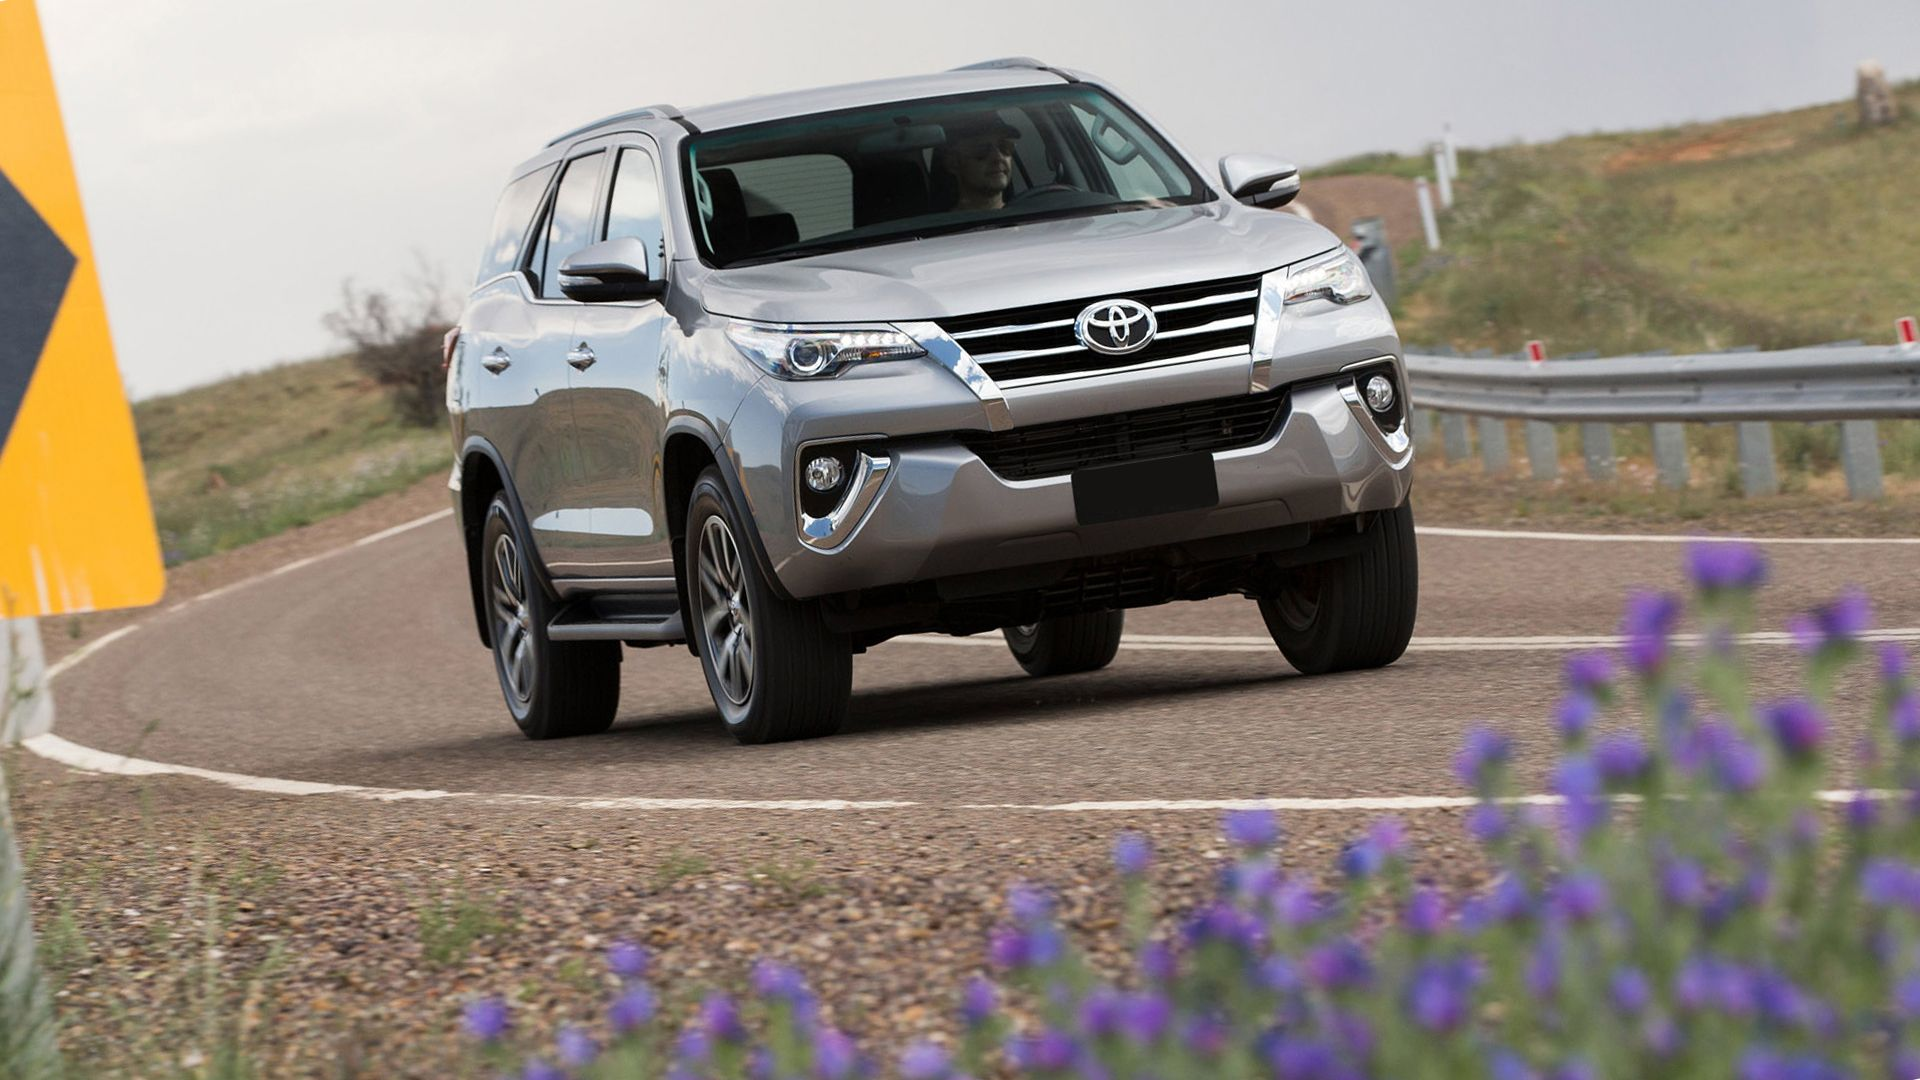 New 2019 Toyota Fortuner Wallpaper Hd Desktop Cars Toyota